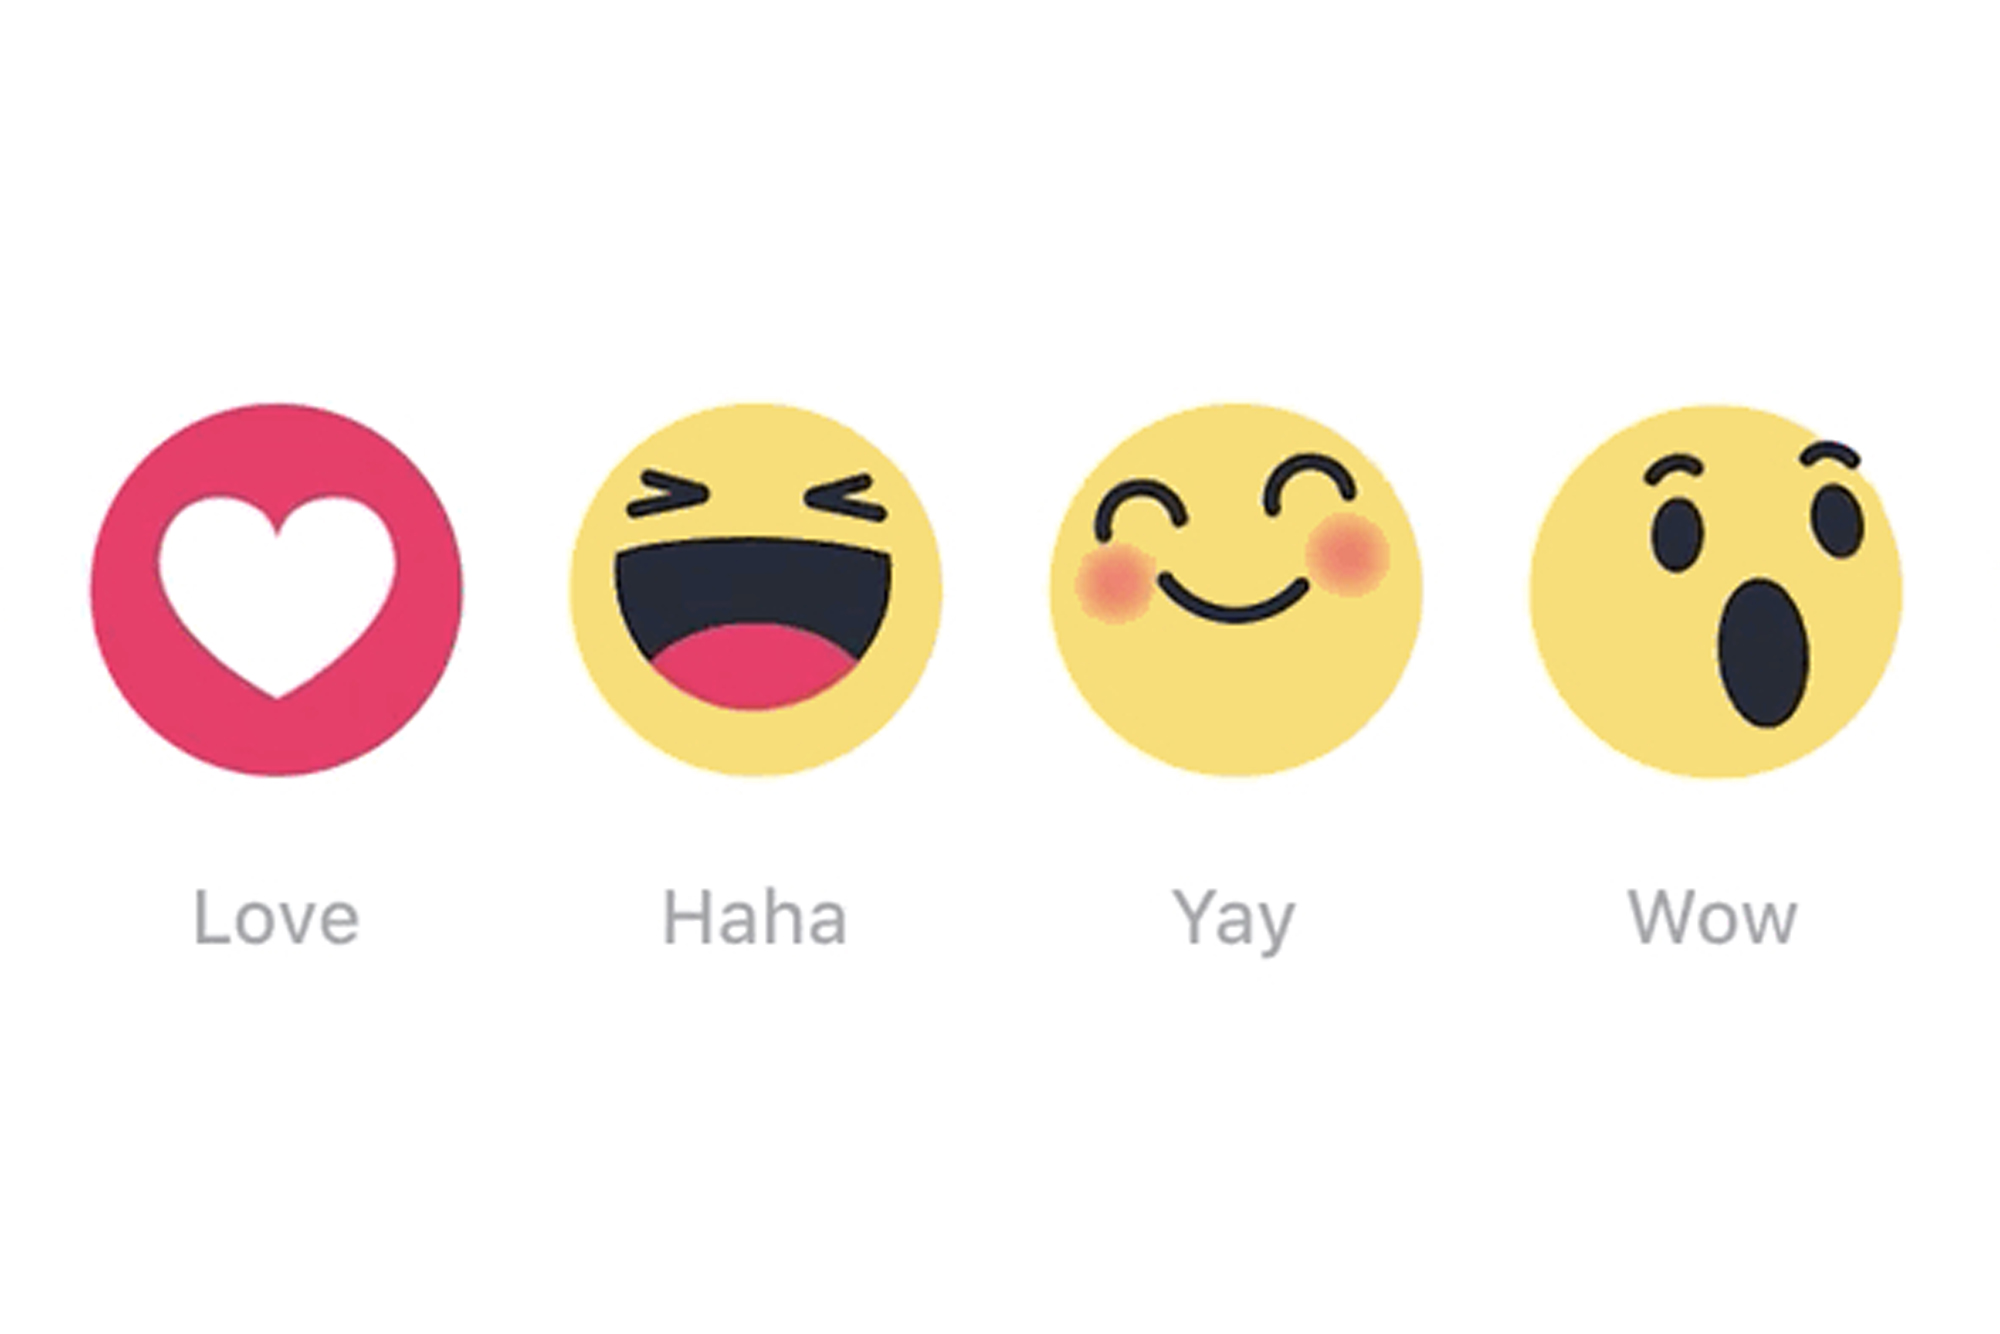 2000x1334 Facebook Just Did Another Face Plant With Its Awful Emojis New